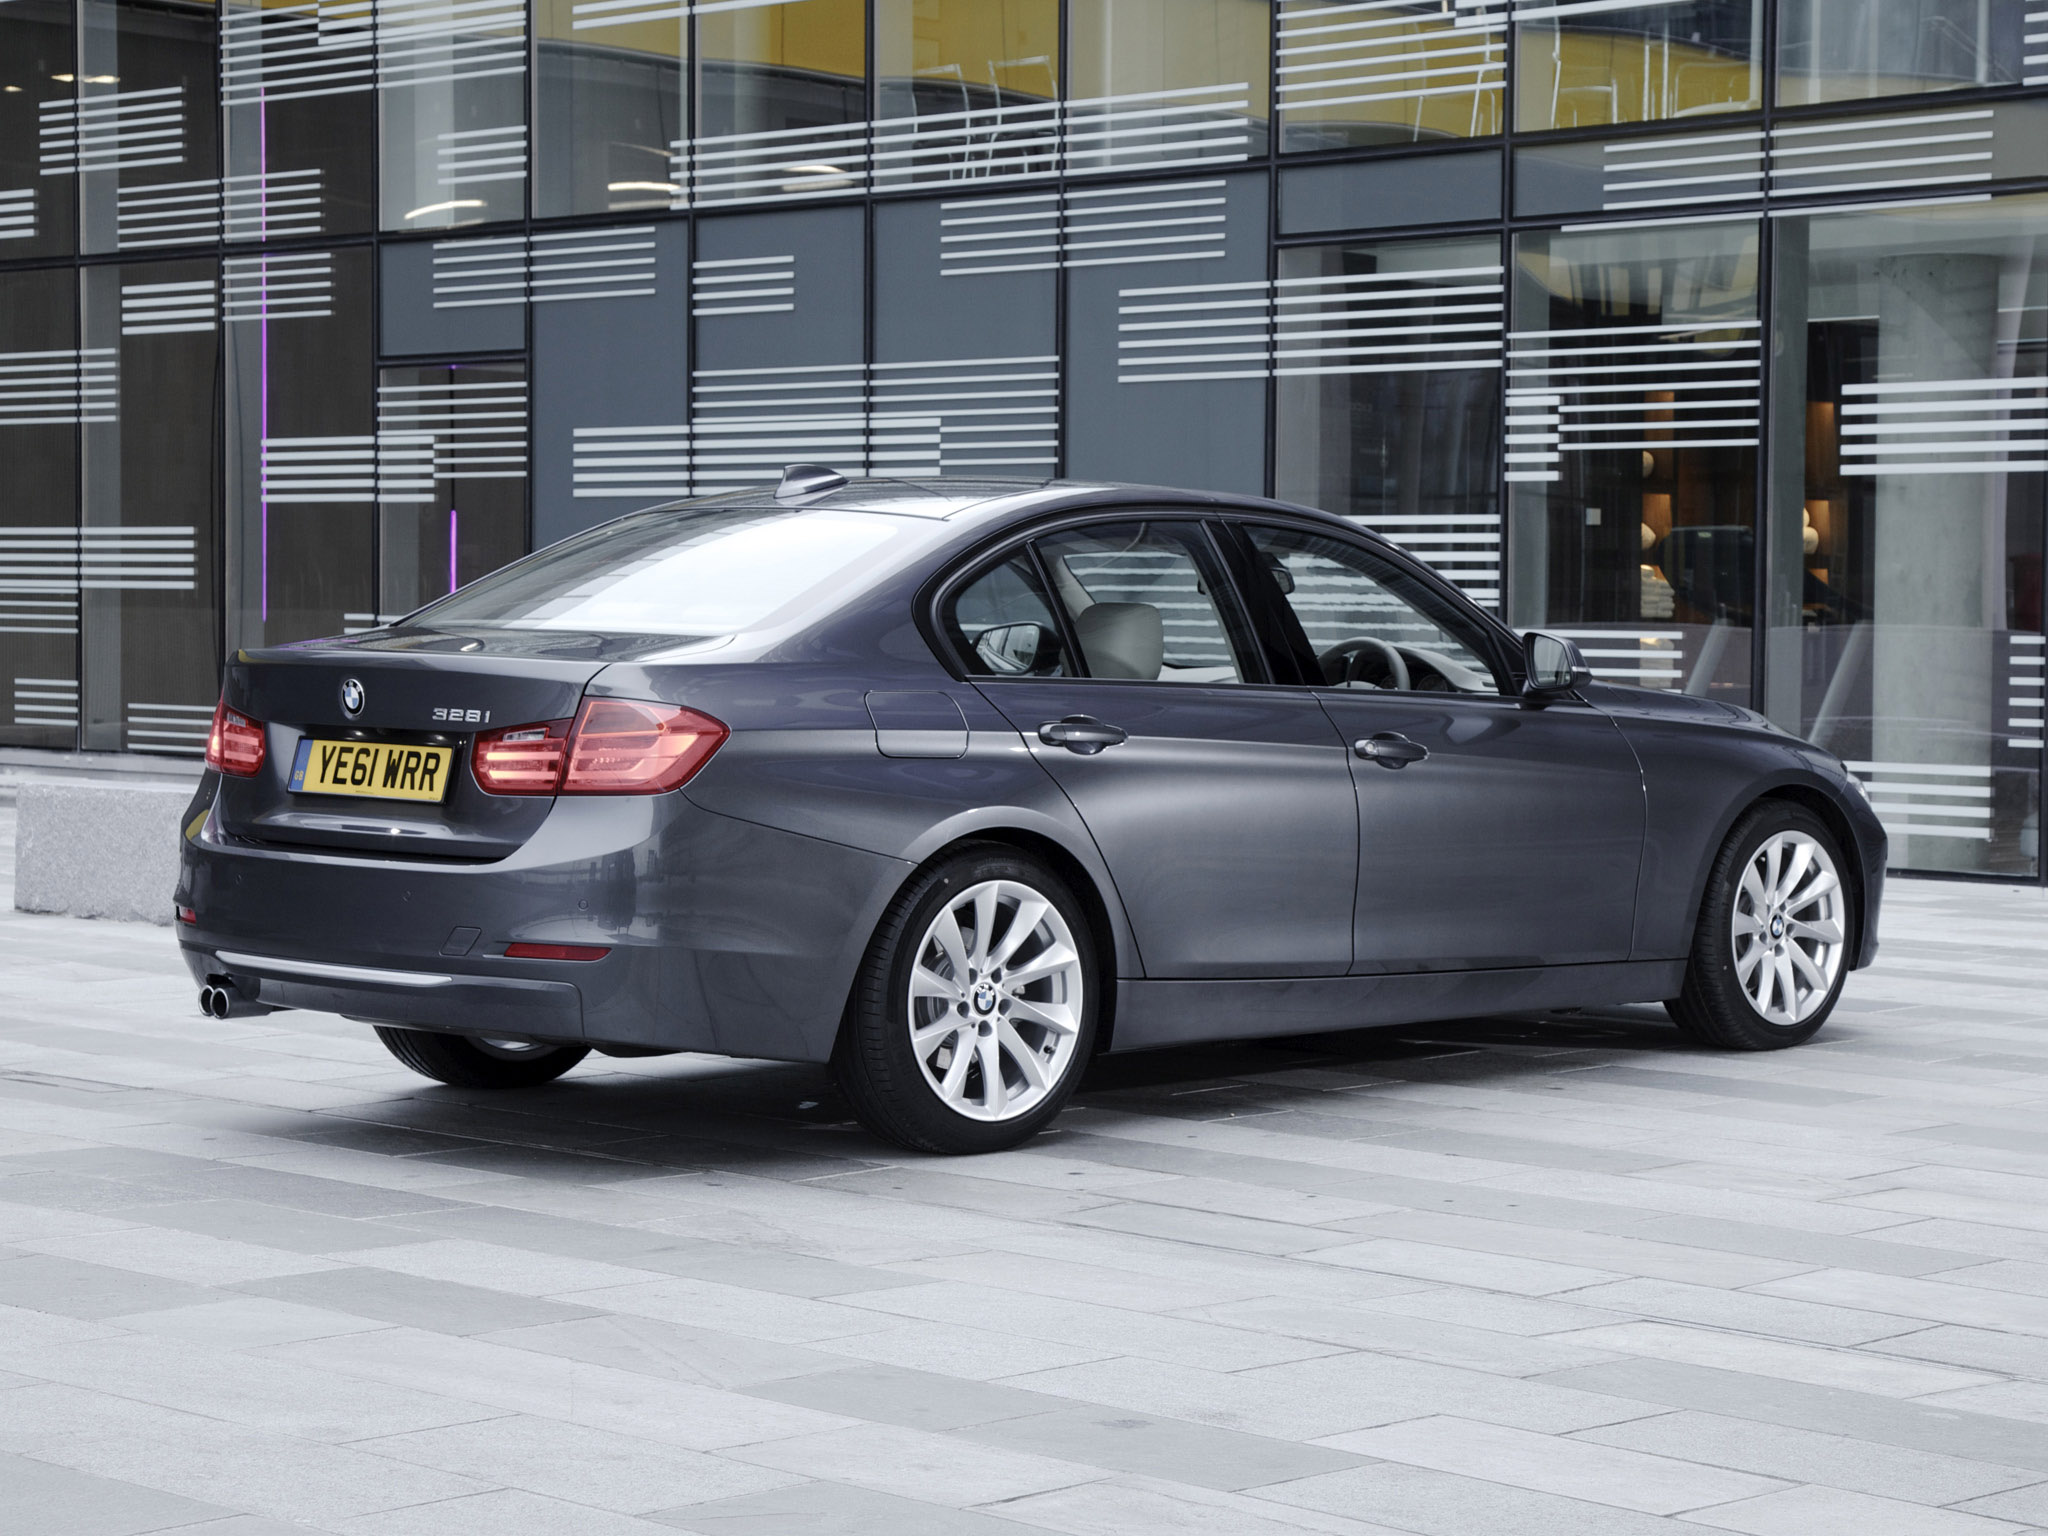 bmw 3 series 328i sedan modern line f30 uk 2012 bmw 3 series 328i sedan modern line f30 uk 2012. Black Bedroom Furniture Sets. Home Design Ideas